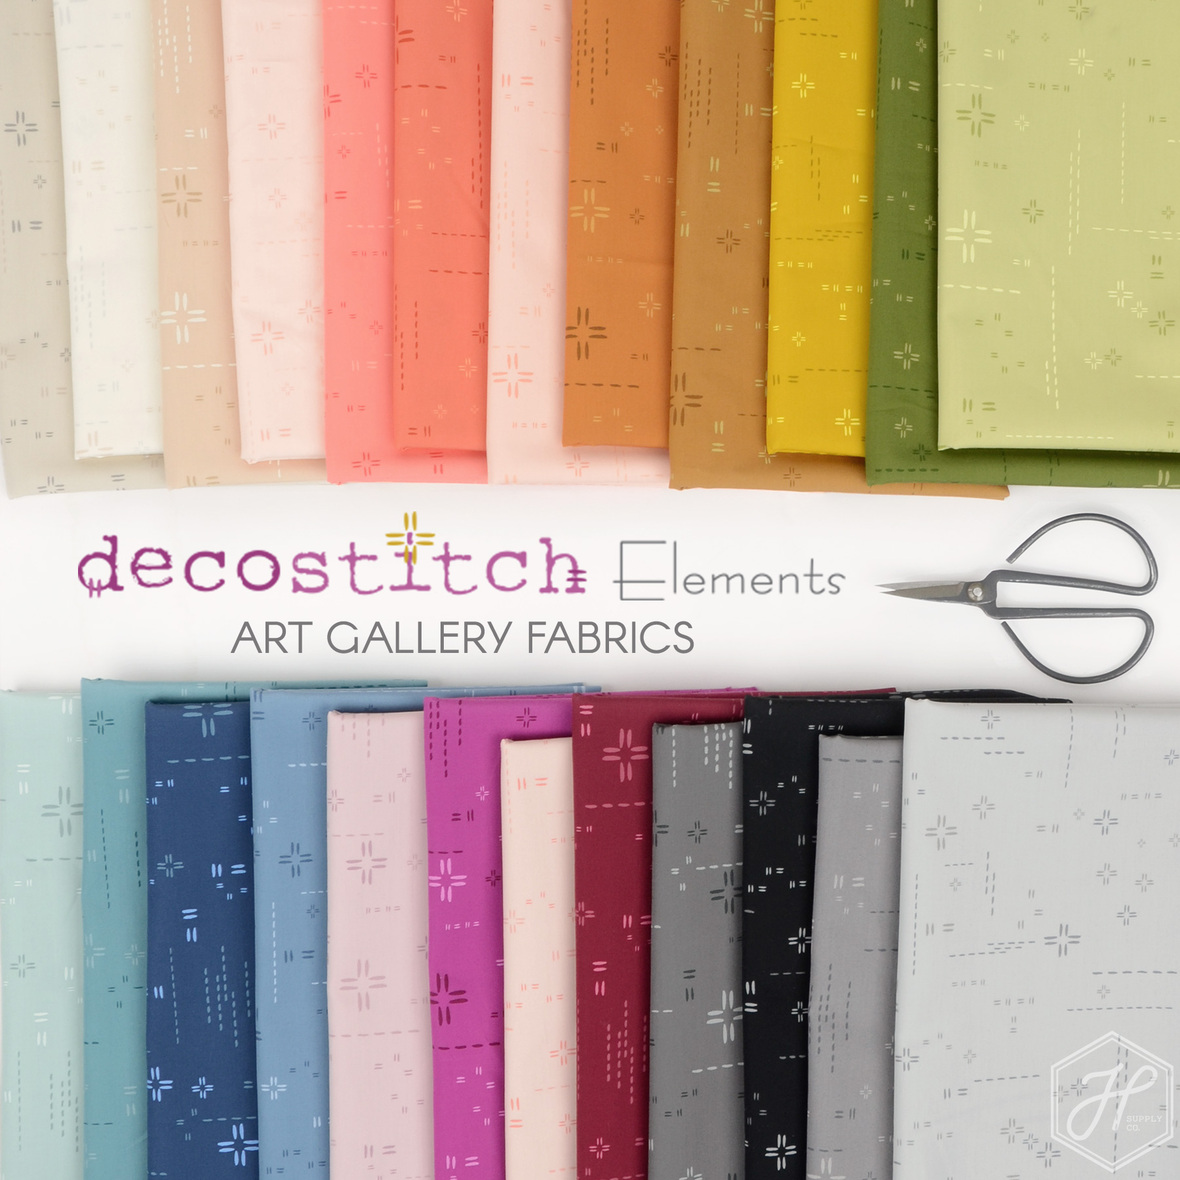 New-Decostitch-Elements-from-Art-Gallery-fabrics-at-Hawthorne-Supply-Co